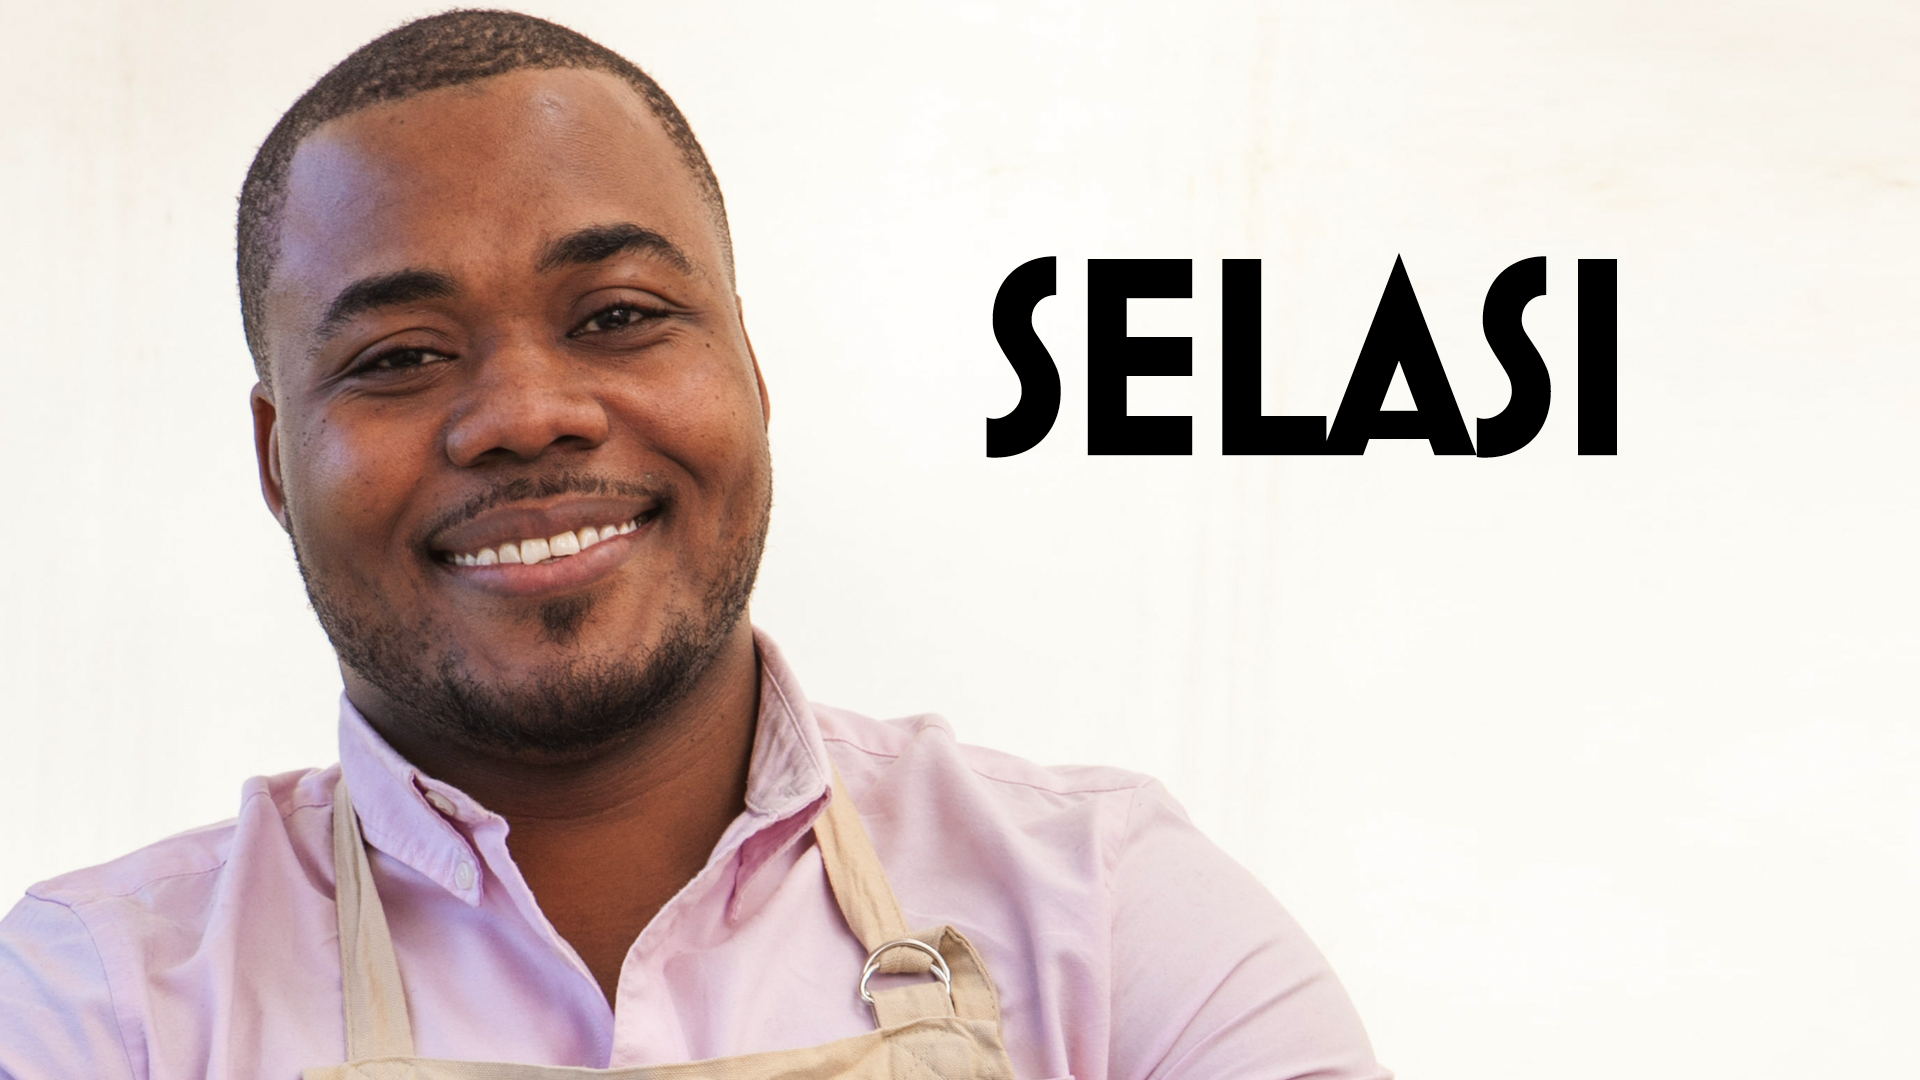 Great-British-Baking-Show-Bakers-Selasi